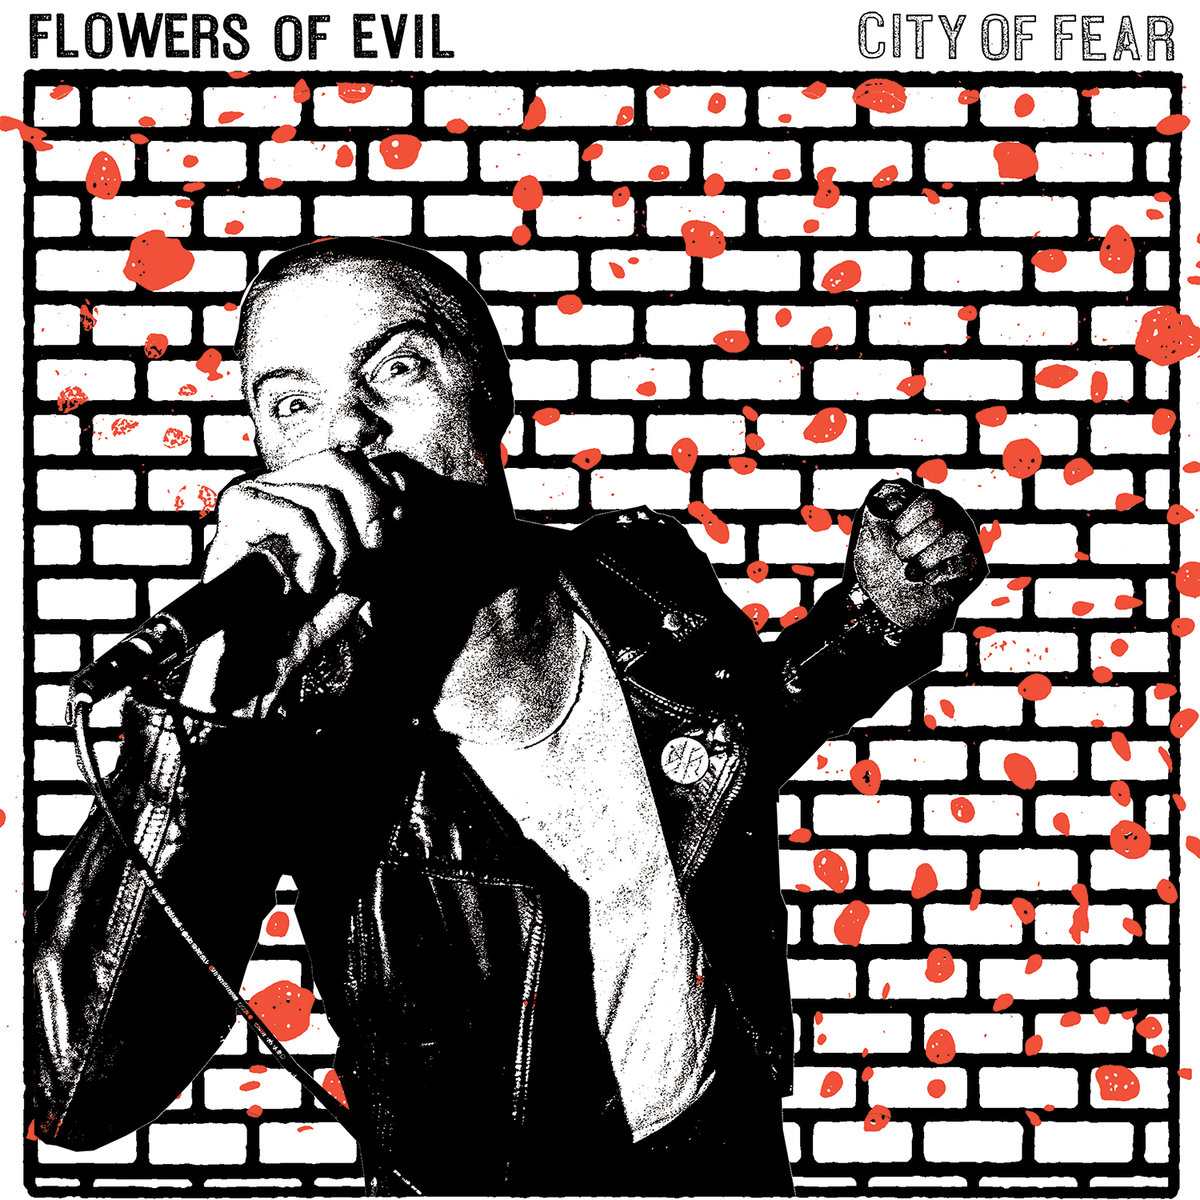 Stream Flowers Evil City Fear Stereogum